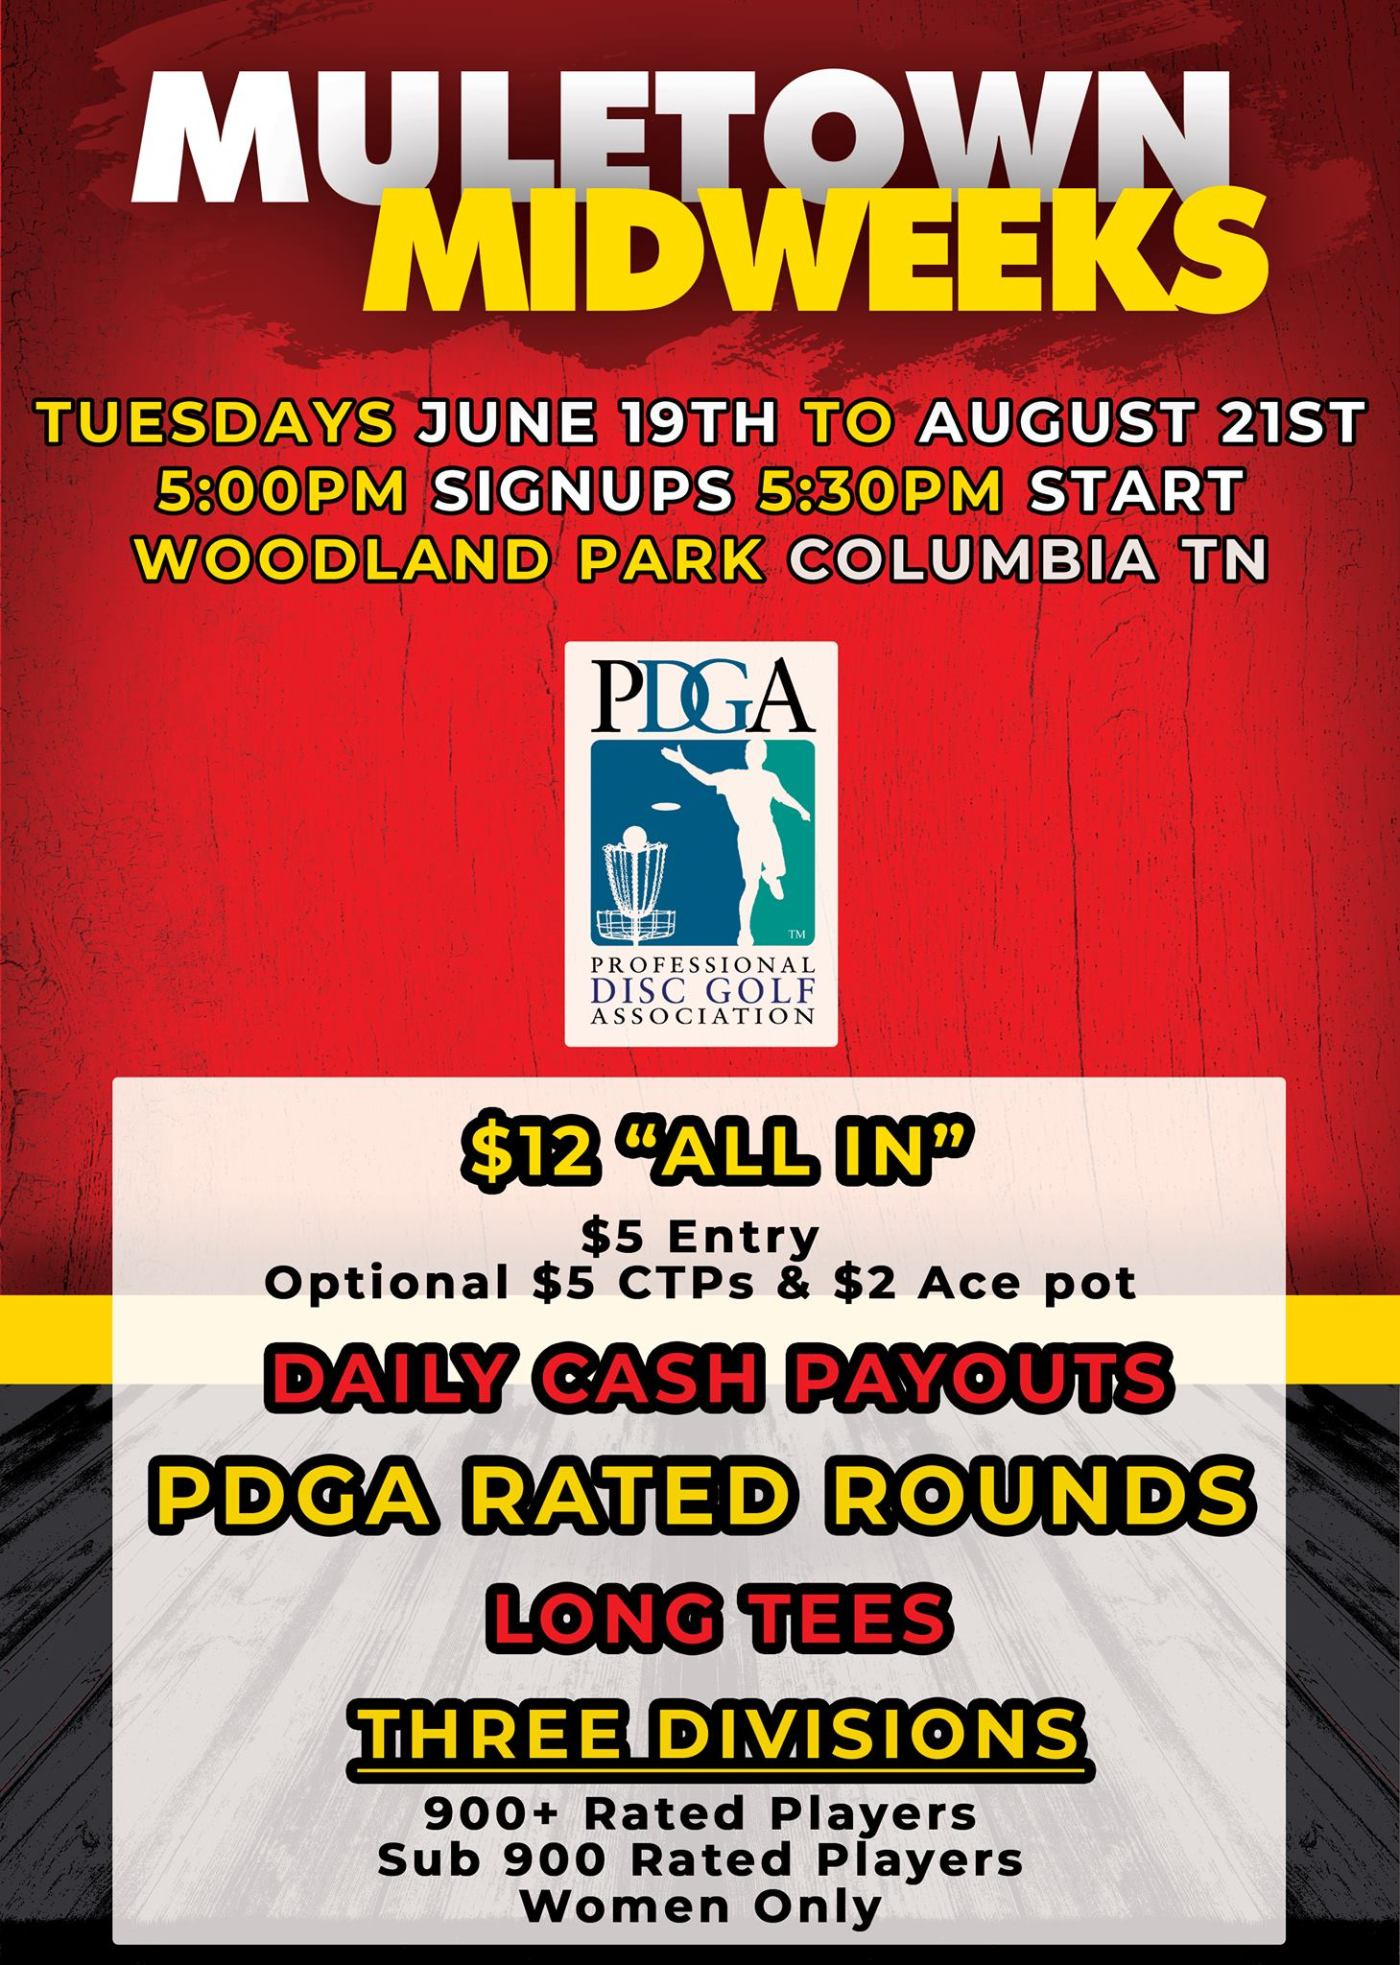 On Tuesday Nights This Summer Muletown Disc Golf Will Be Hosting A PDGA League With Weekly Payouts At Woodland Park Here Are The Details